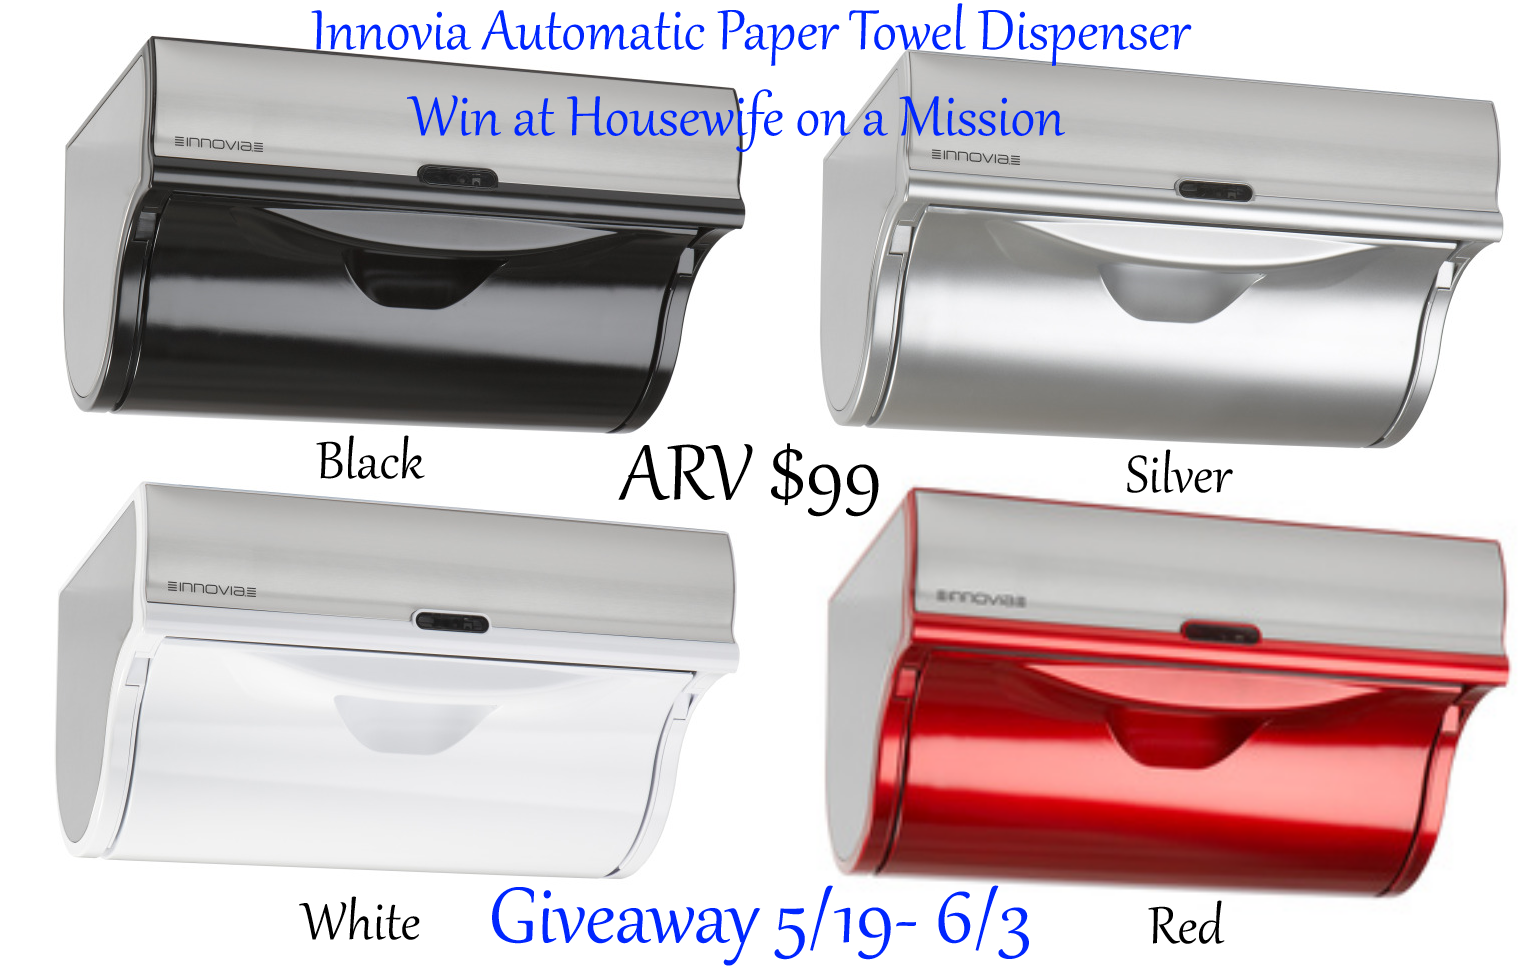 how to open paper towel dispenser without key